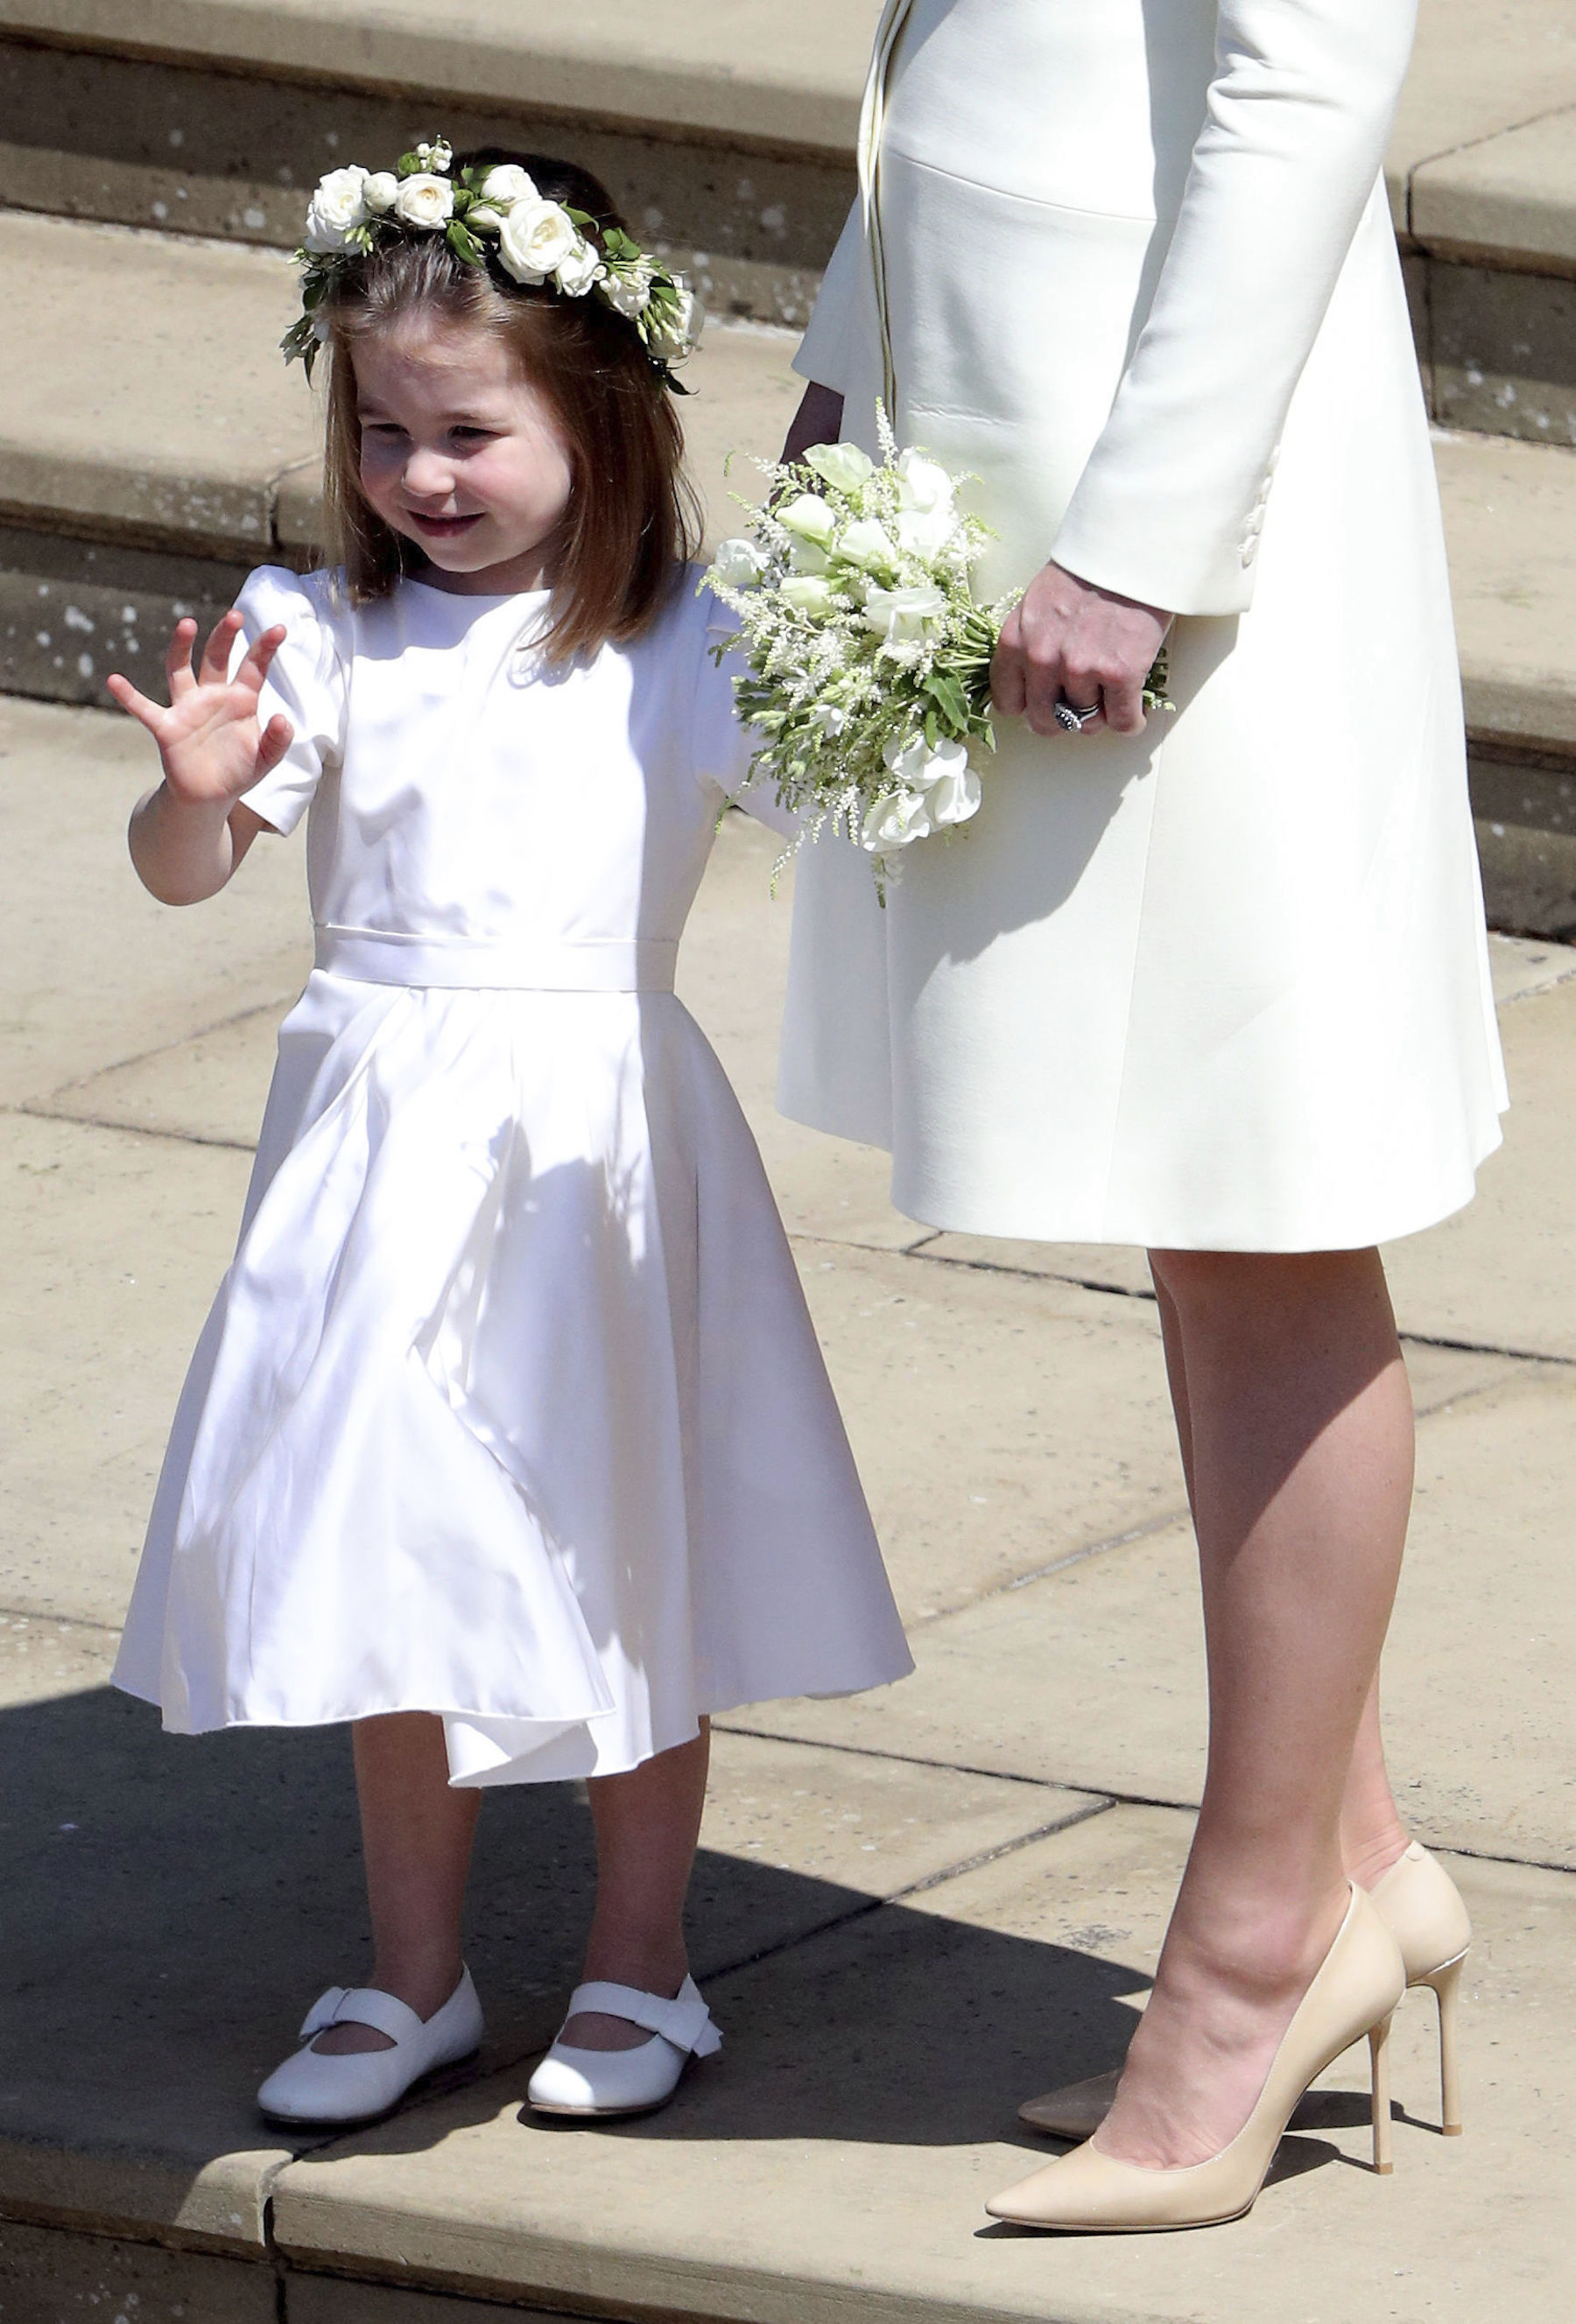 <div class='meta'><div class='origin-logo' data-origin='Creative Content'></div><span class='caption-text' data-credit='Andrew Matthews/PA Wire'>Princess Charlotte after the wedding of Prince Harry and Meghan Markle at Windsor Castle.</span></div>